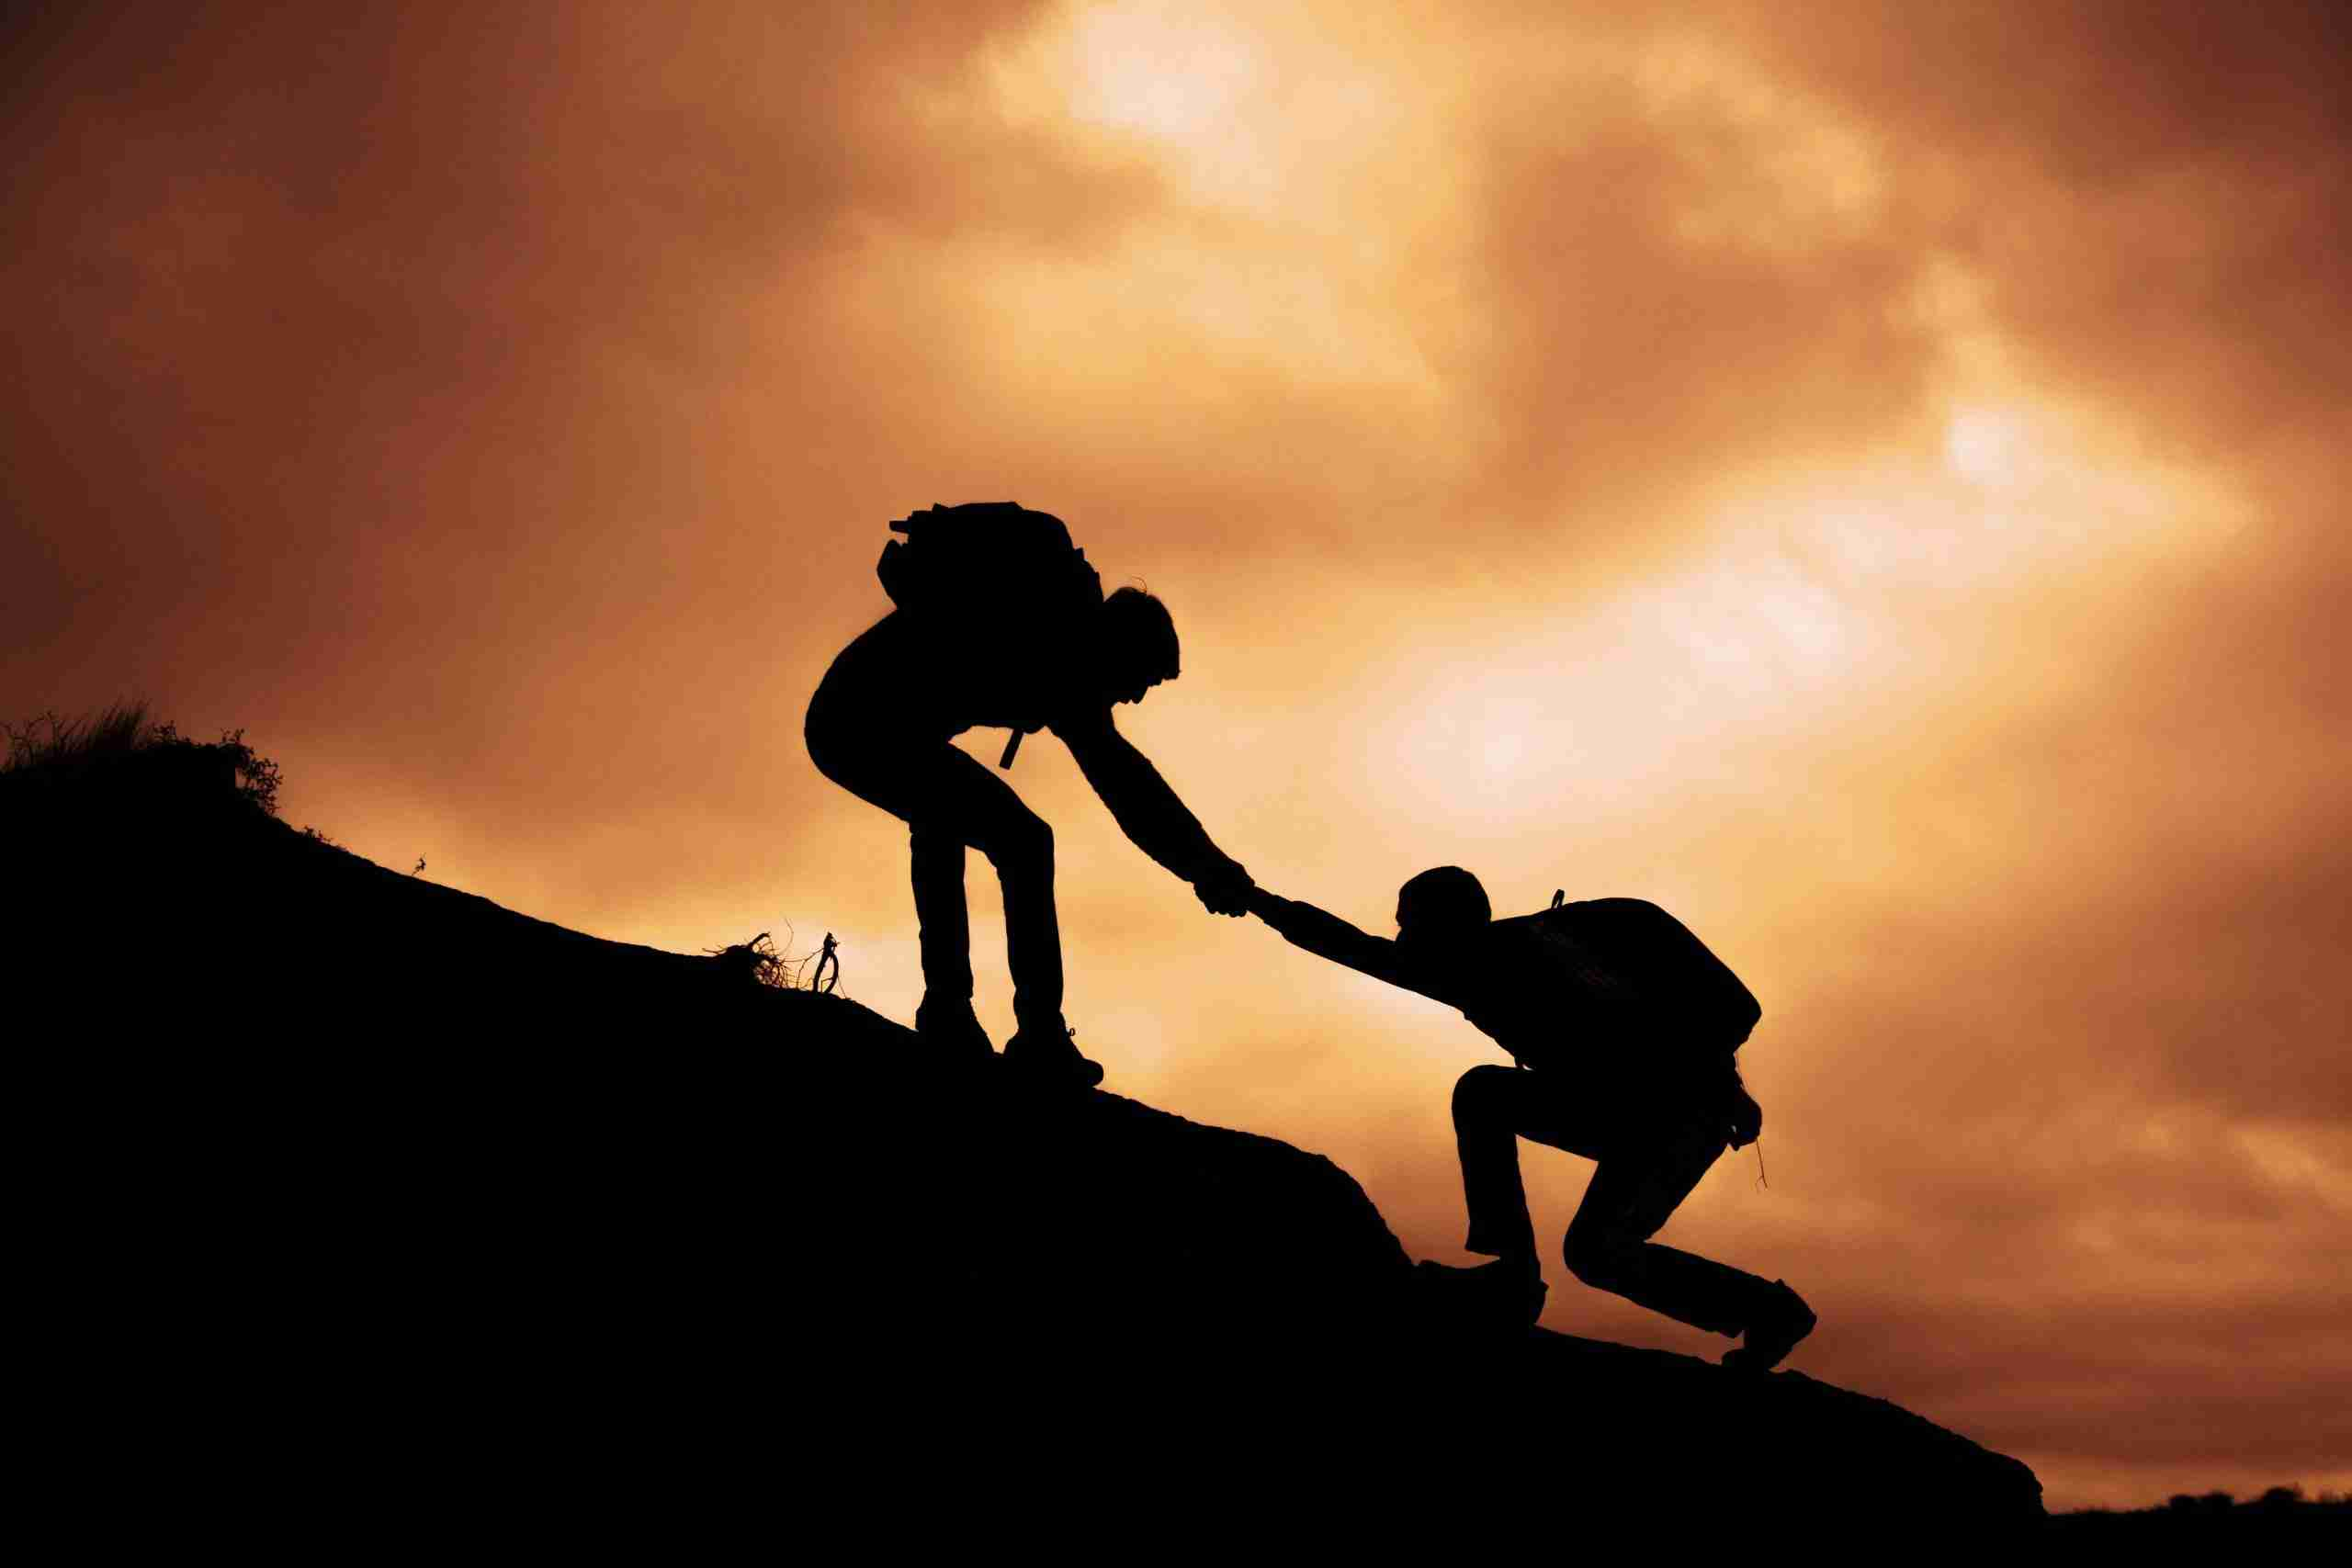 A person helping another person up a hill, signifying how critical it is to understand the challenges of the customer for customer experience.